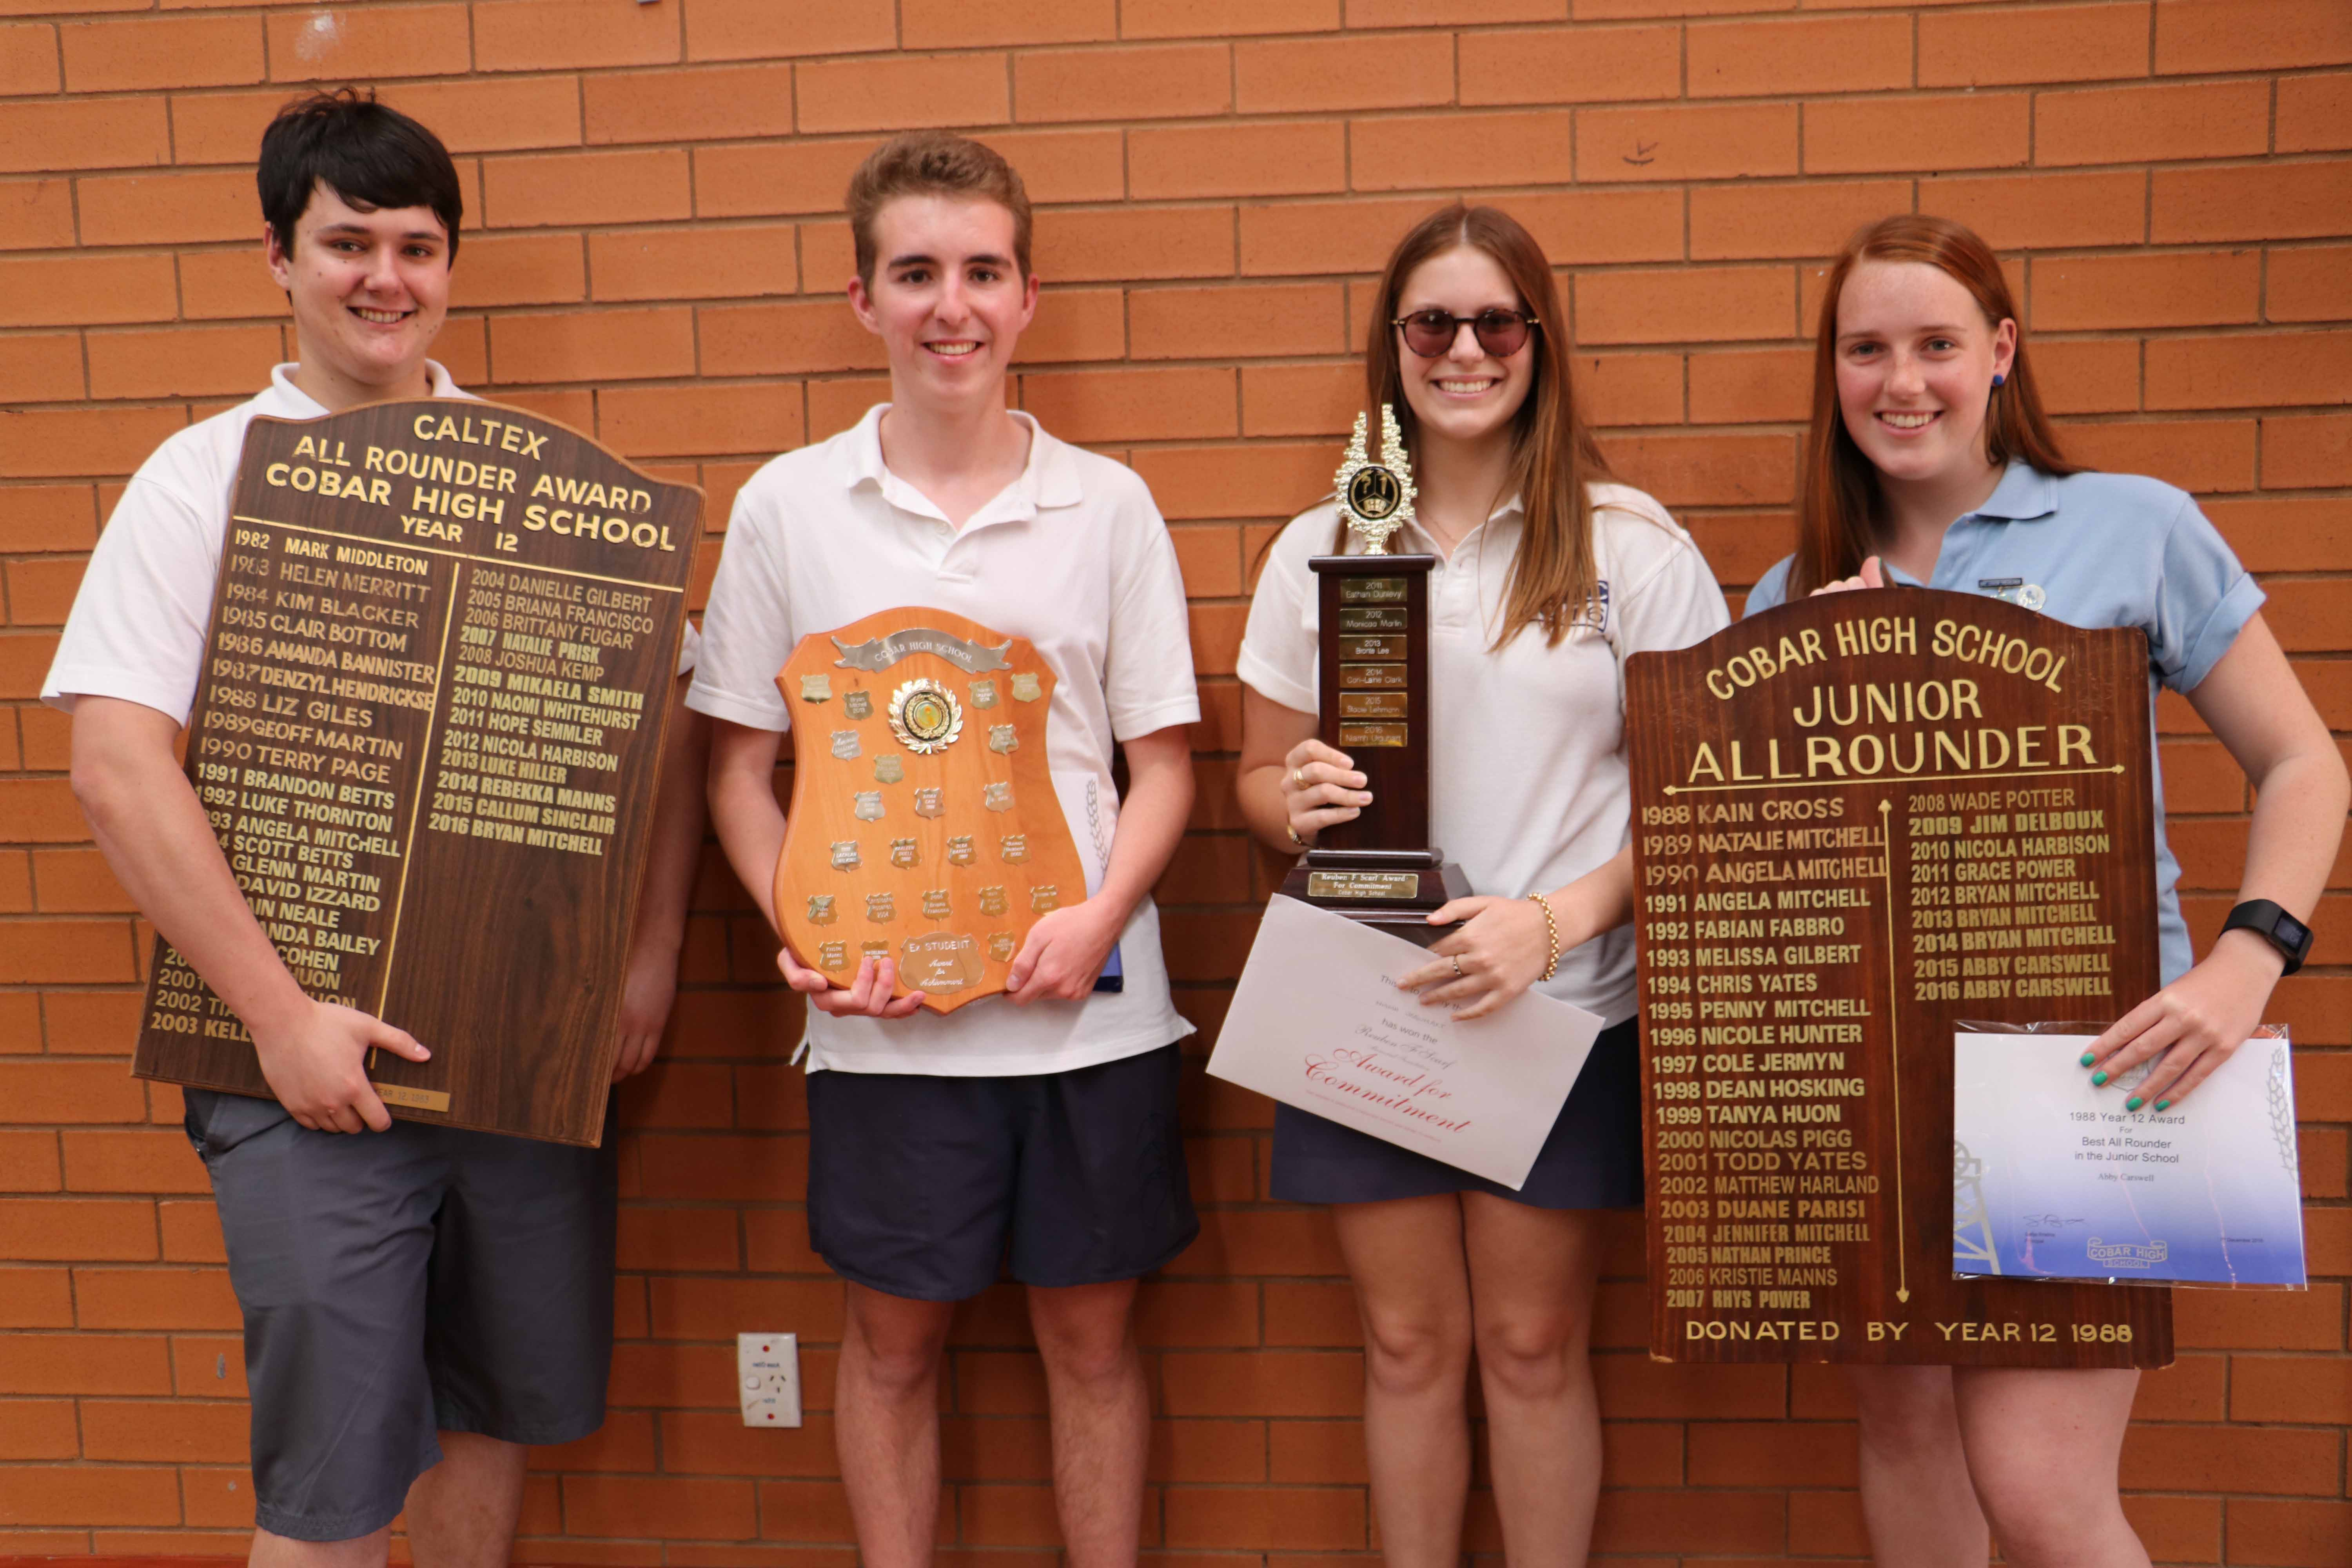 Cobar high school photos